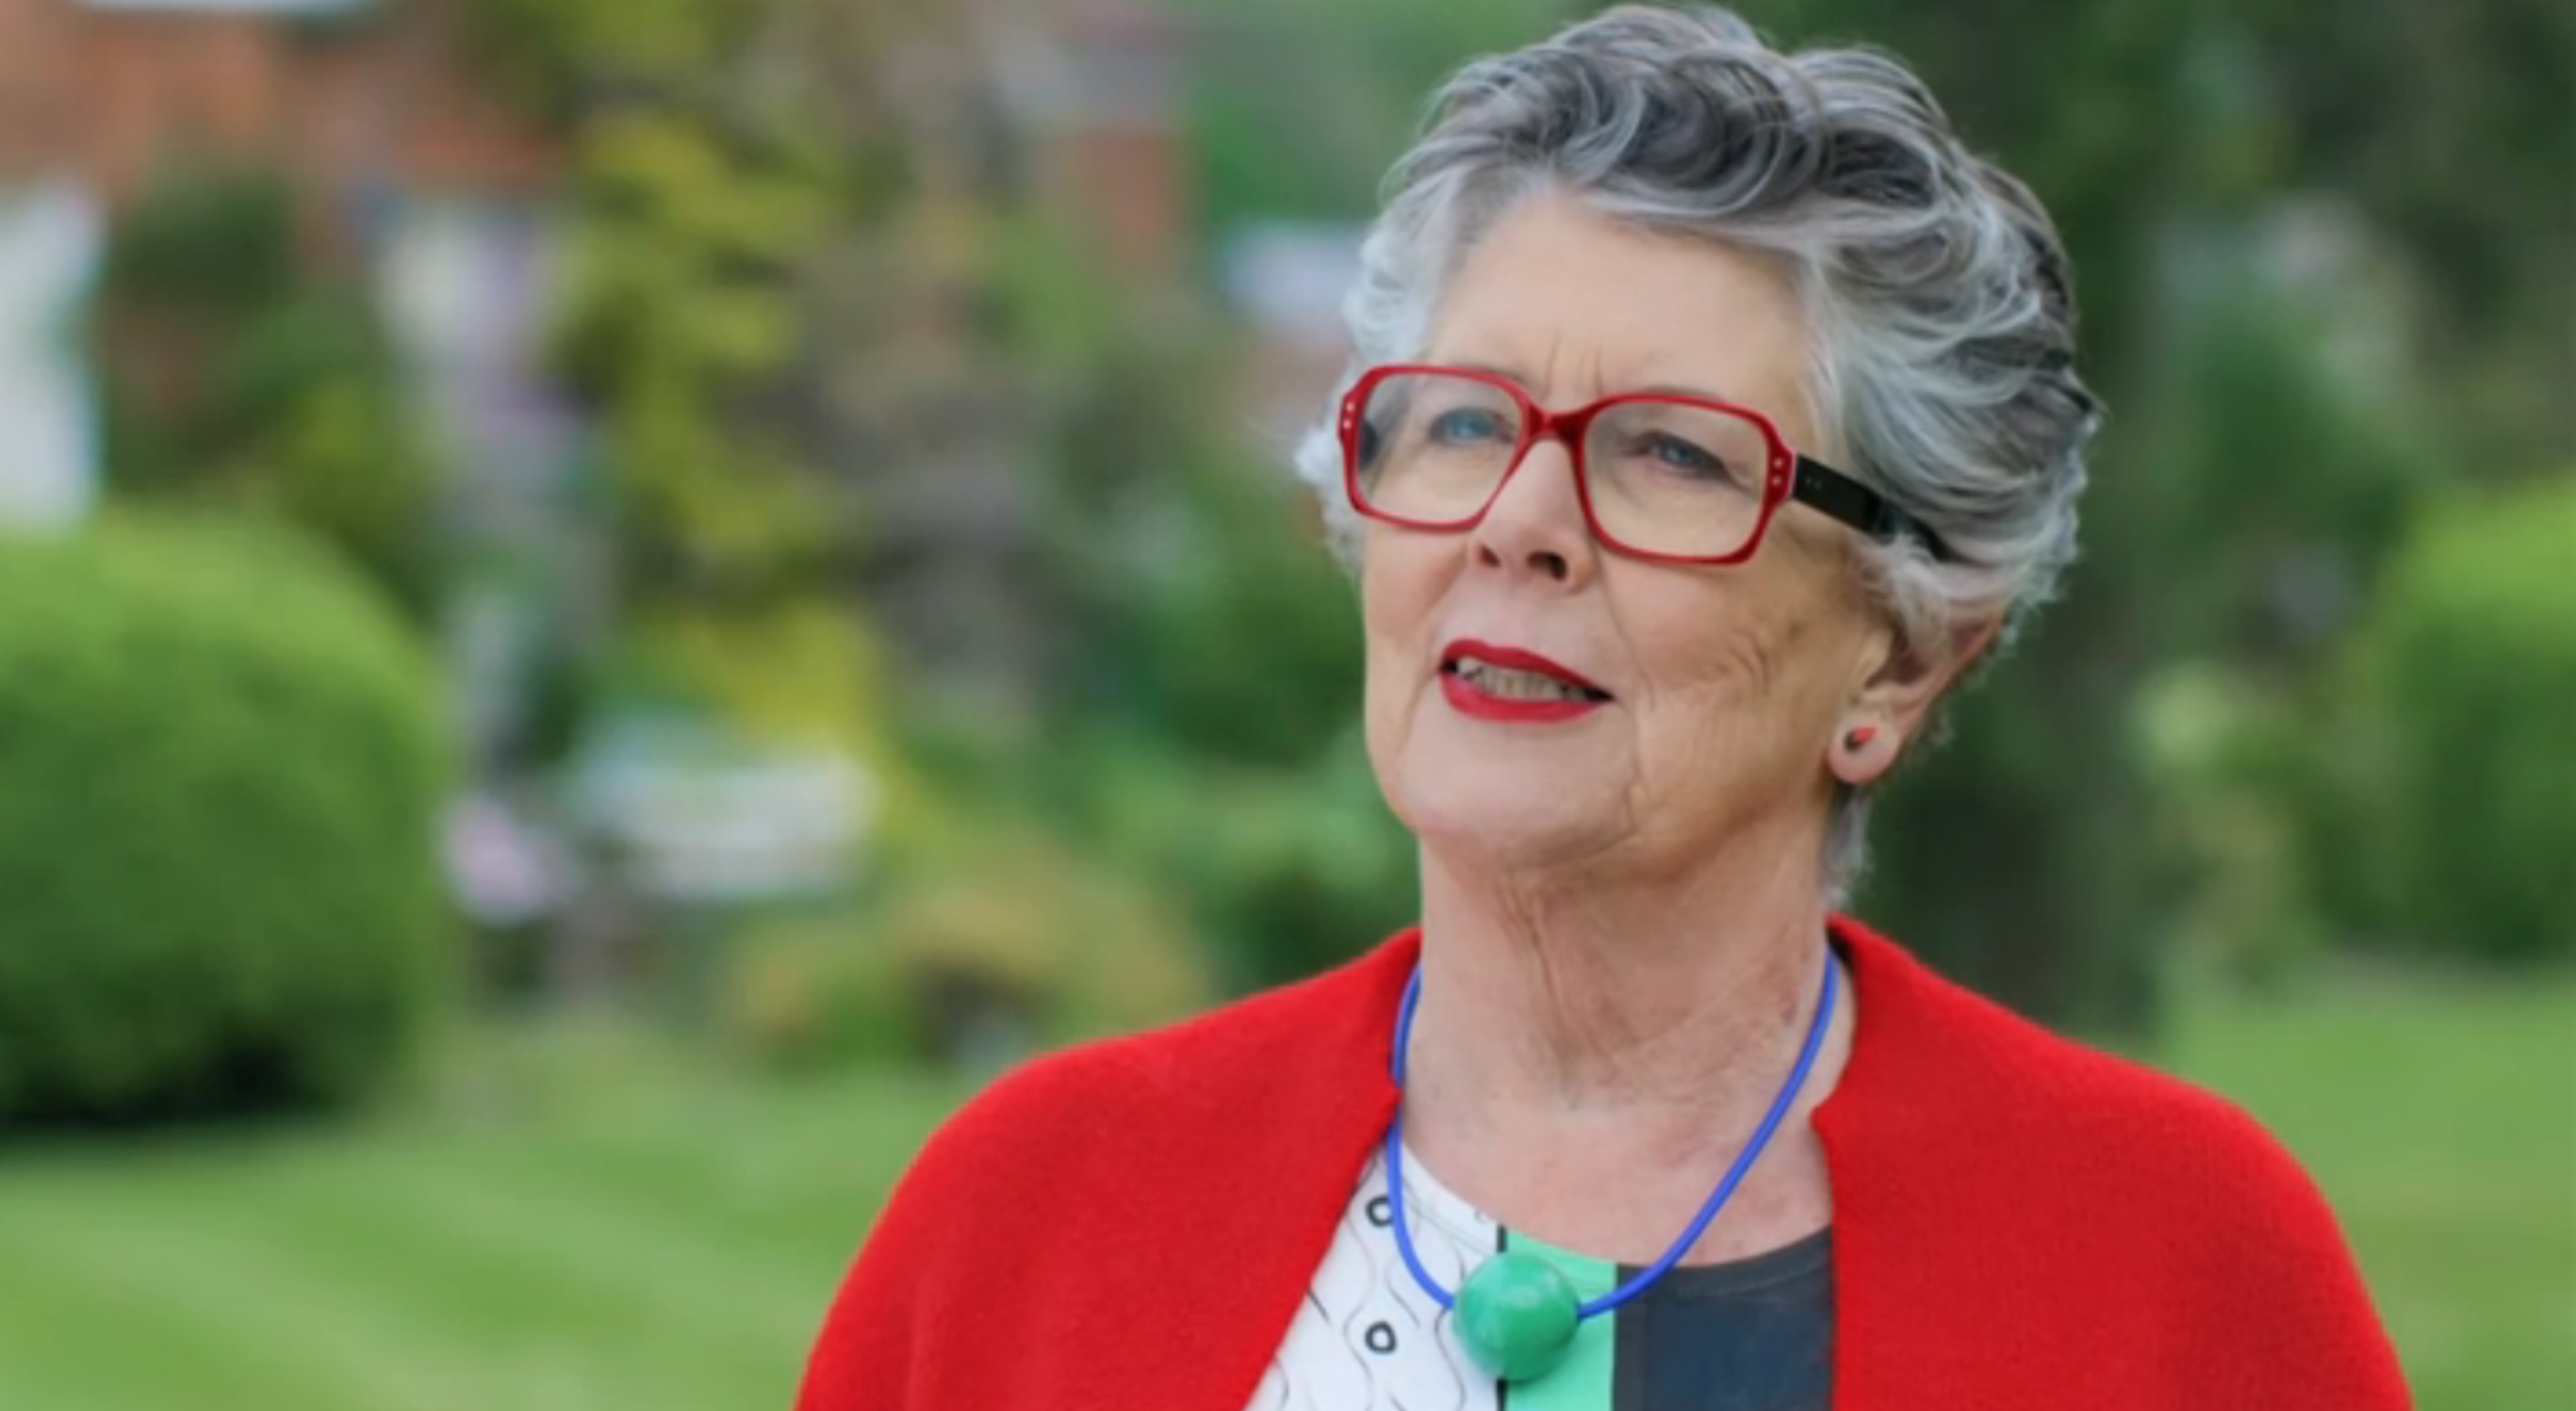 The Great British Bake Off viewers think judge Prue Leith has committed a serious baking offence